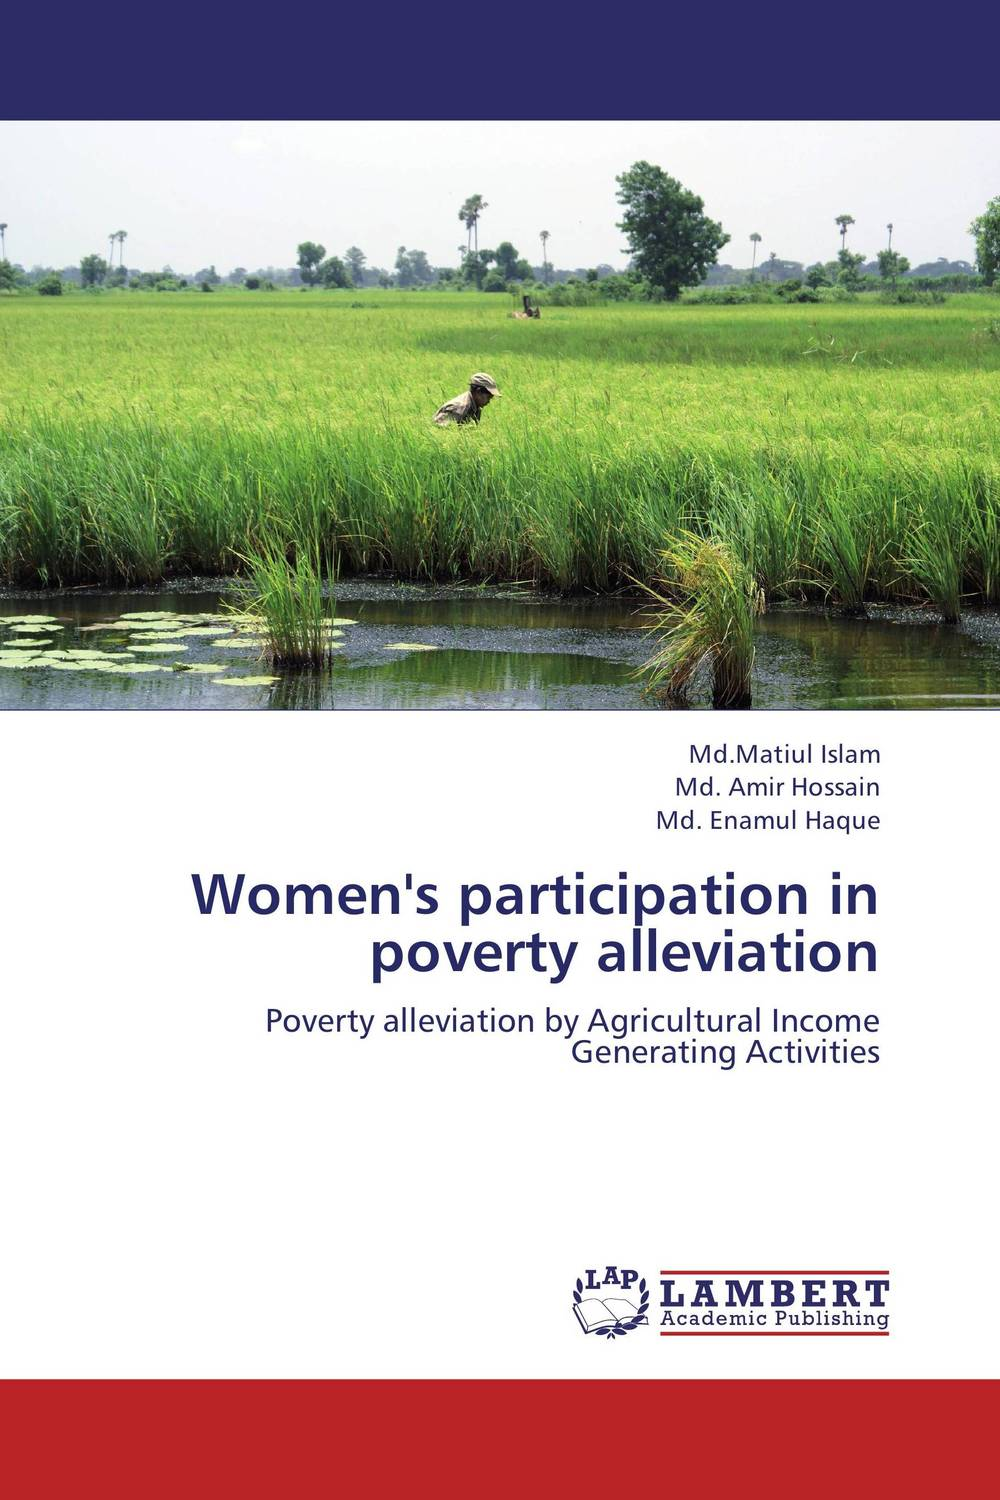 Women's participation in poverty alleviation taisser h h deafalla non wood forest products and poverty alleviation in semi arid region